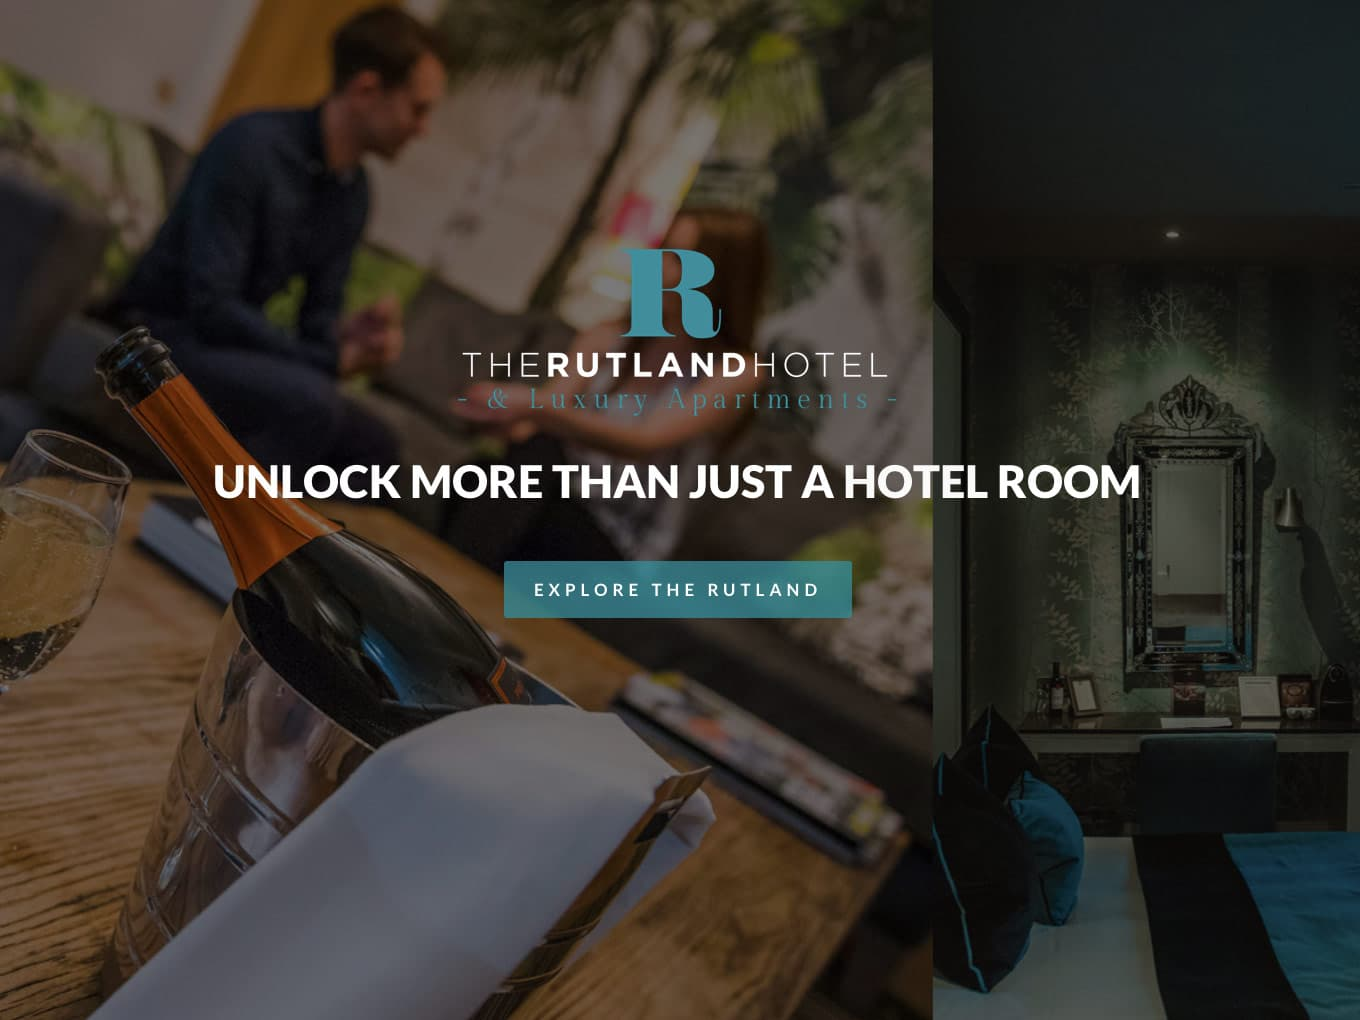 The rutland hotel website design